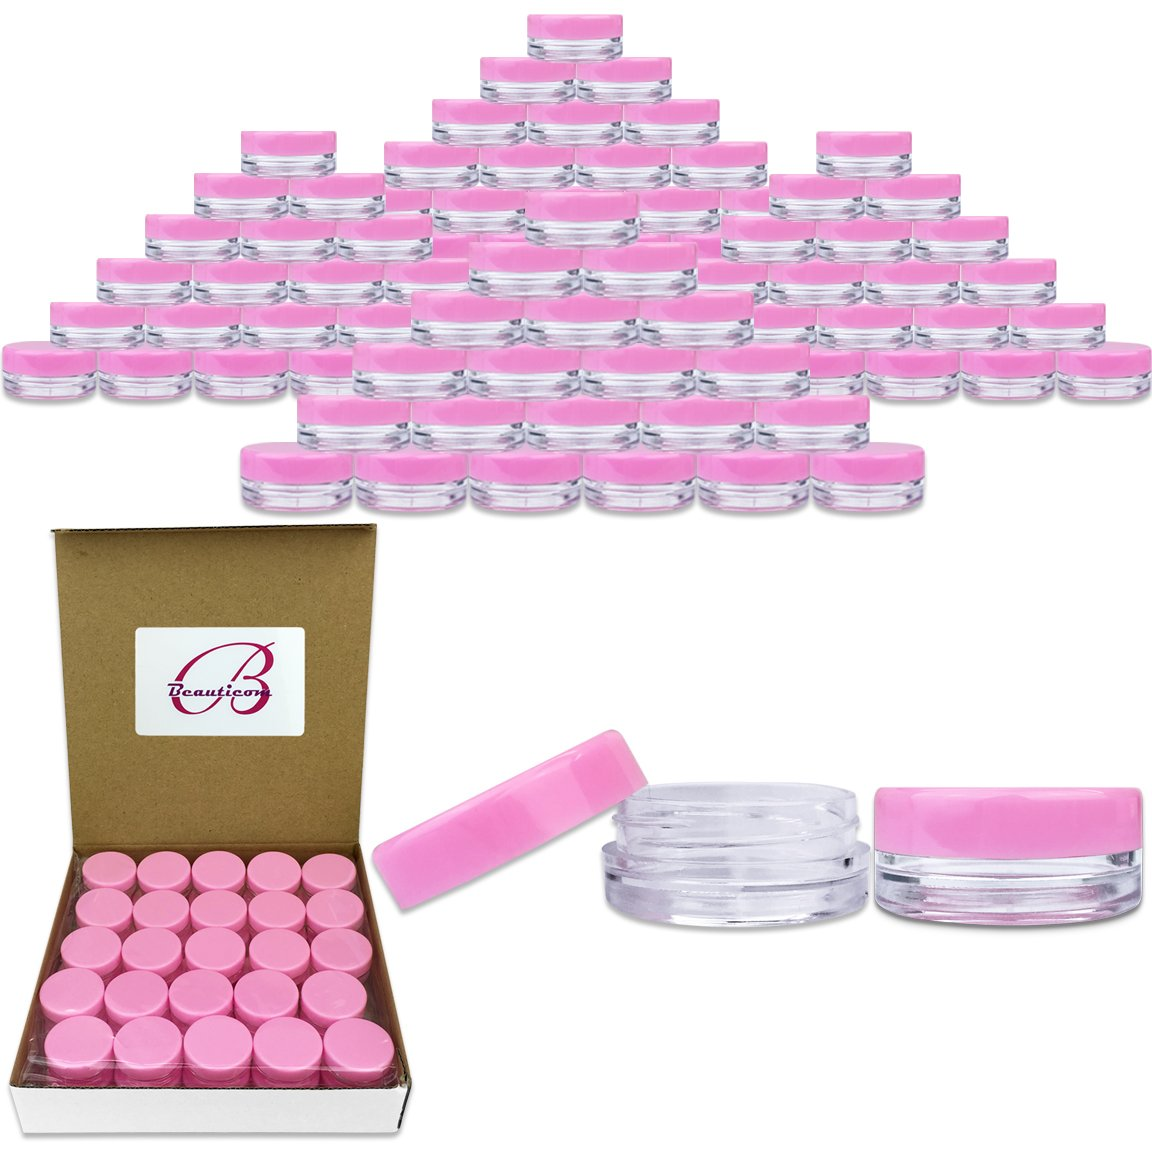 Beauticom 3G/3ML Round Clear Jars with Pink Lids for Powdered Eyeshadow, Mineralized Makeup, Cosmetic Samples - BPA Free (Quantity: 2000 Pieces)